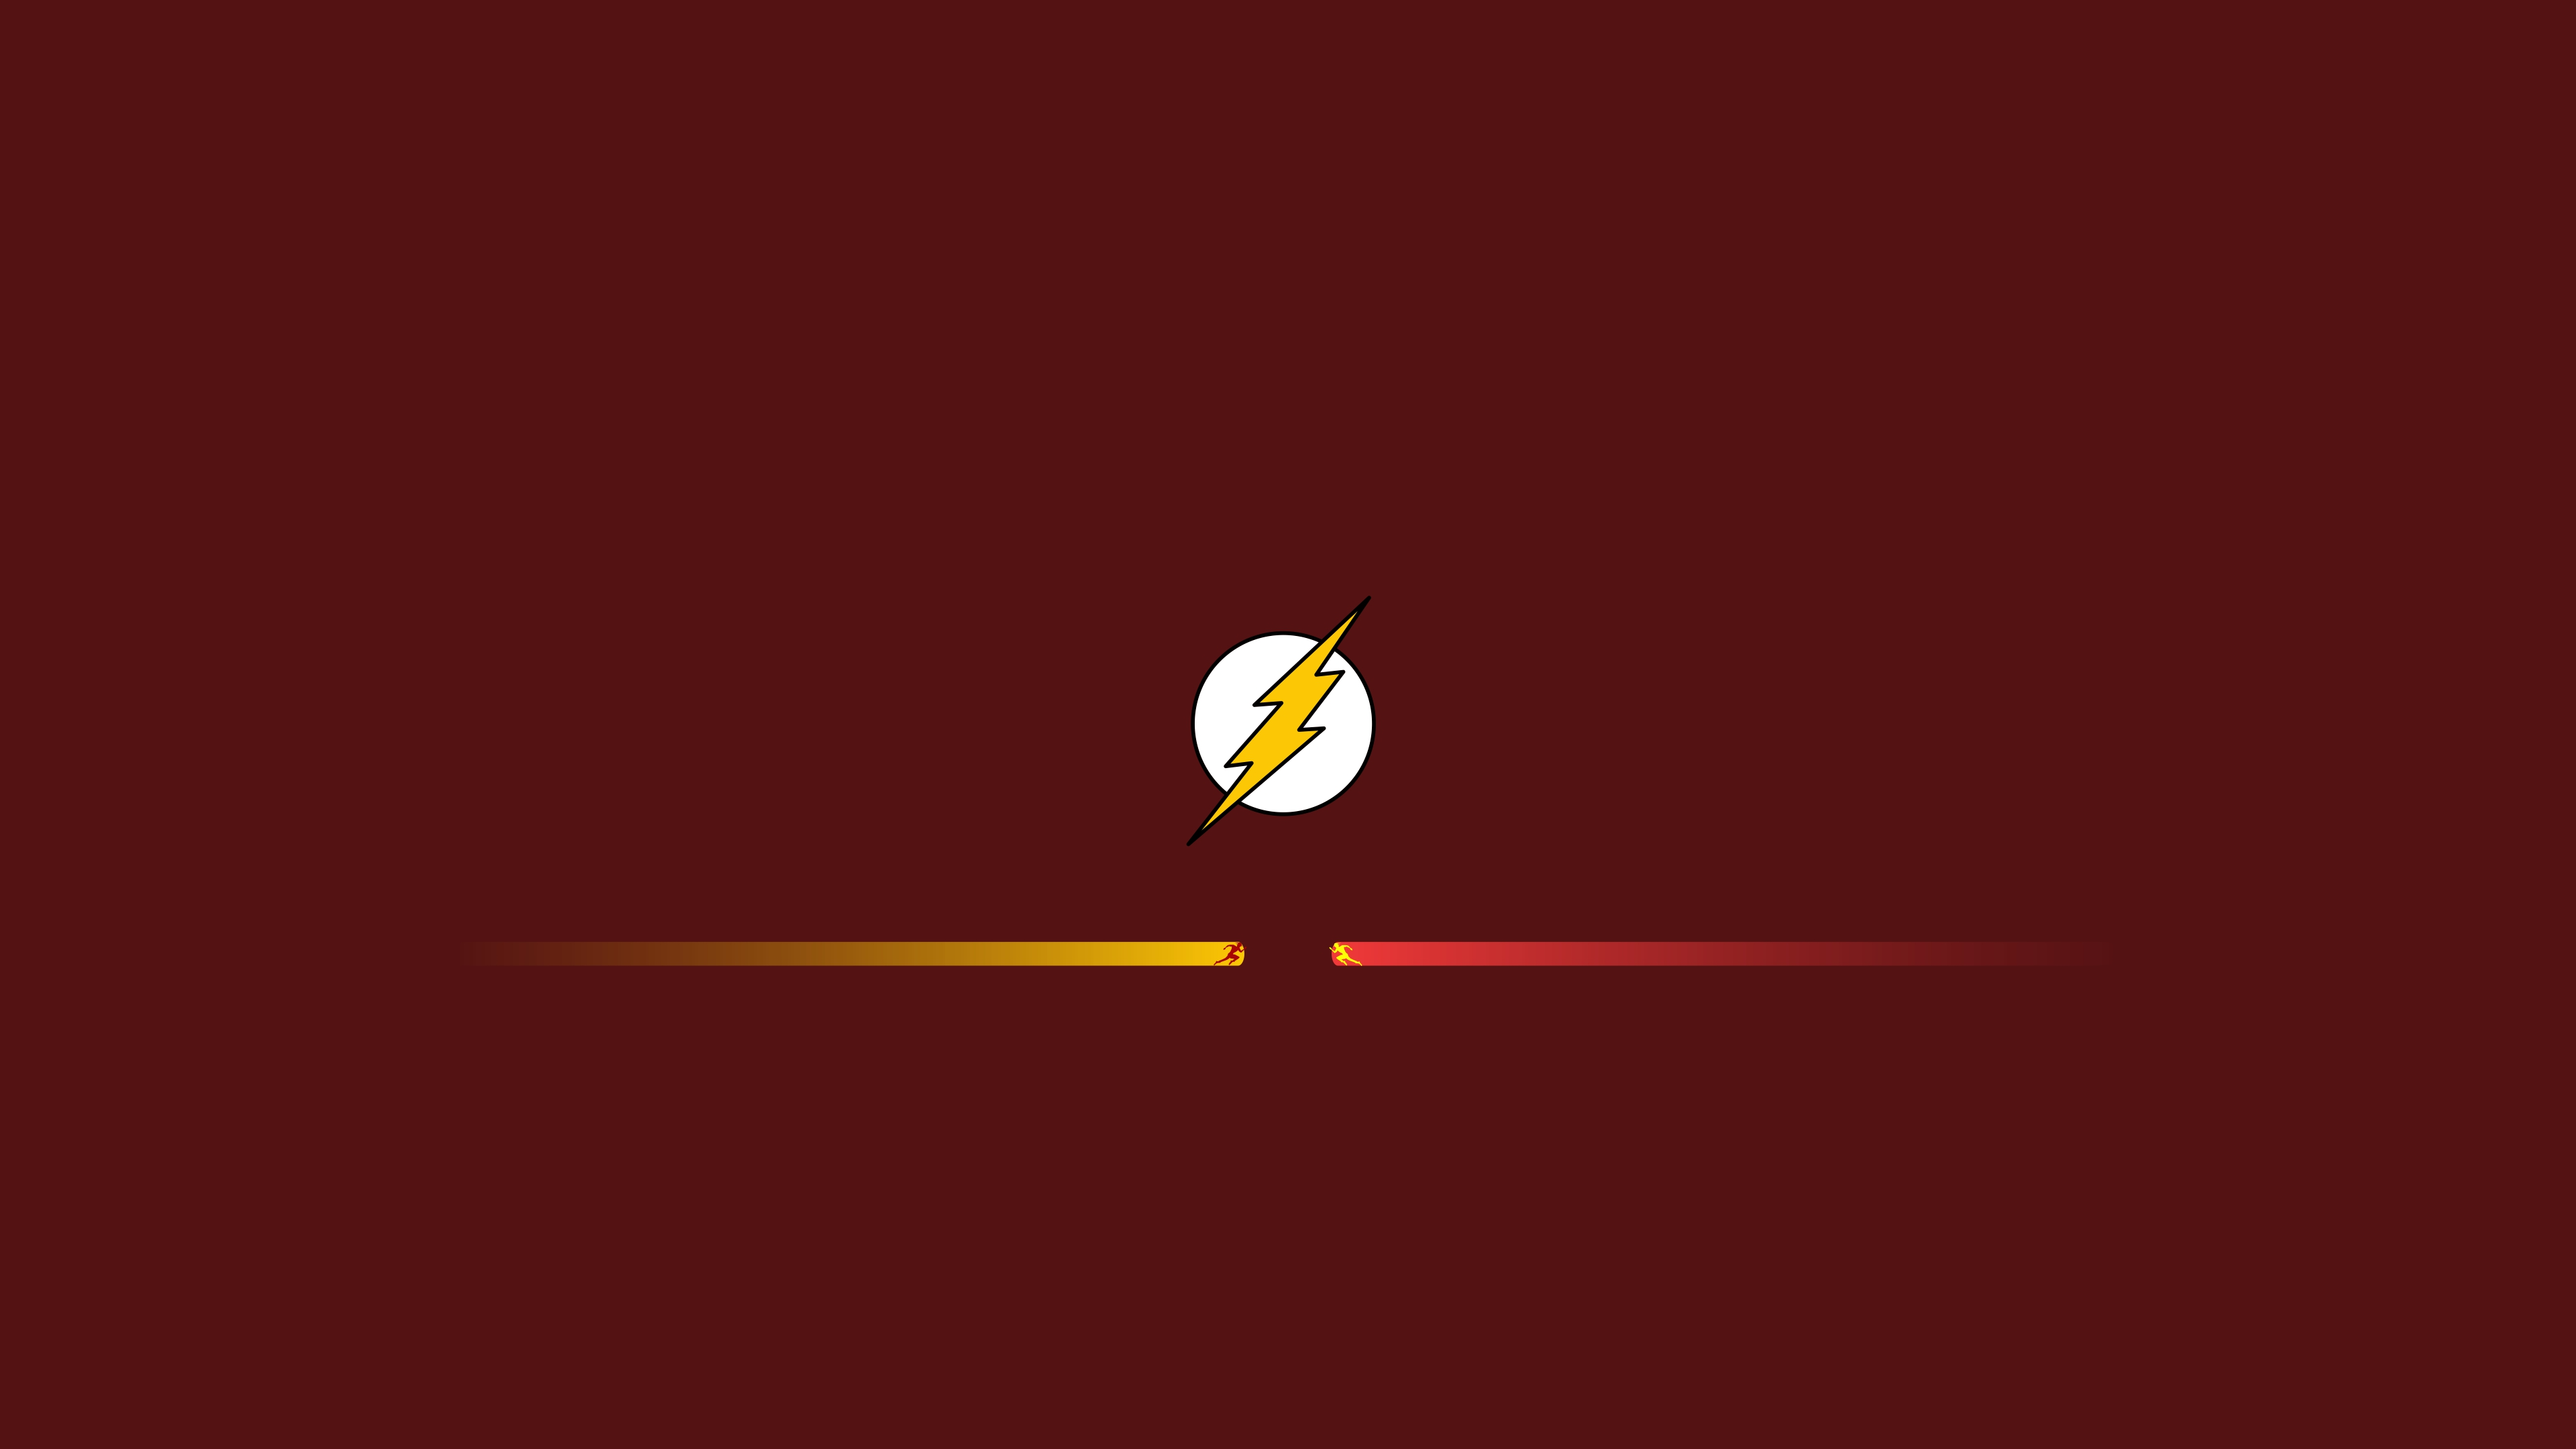 The Flash And Reverse Flash Minimalist Wallpaper 4k Ultra Hd